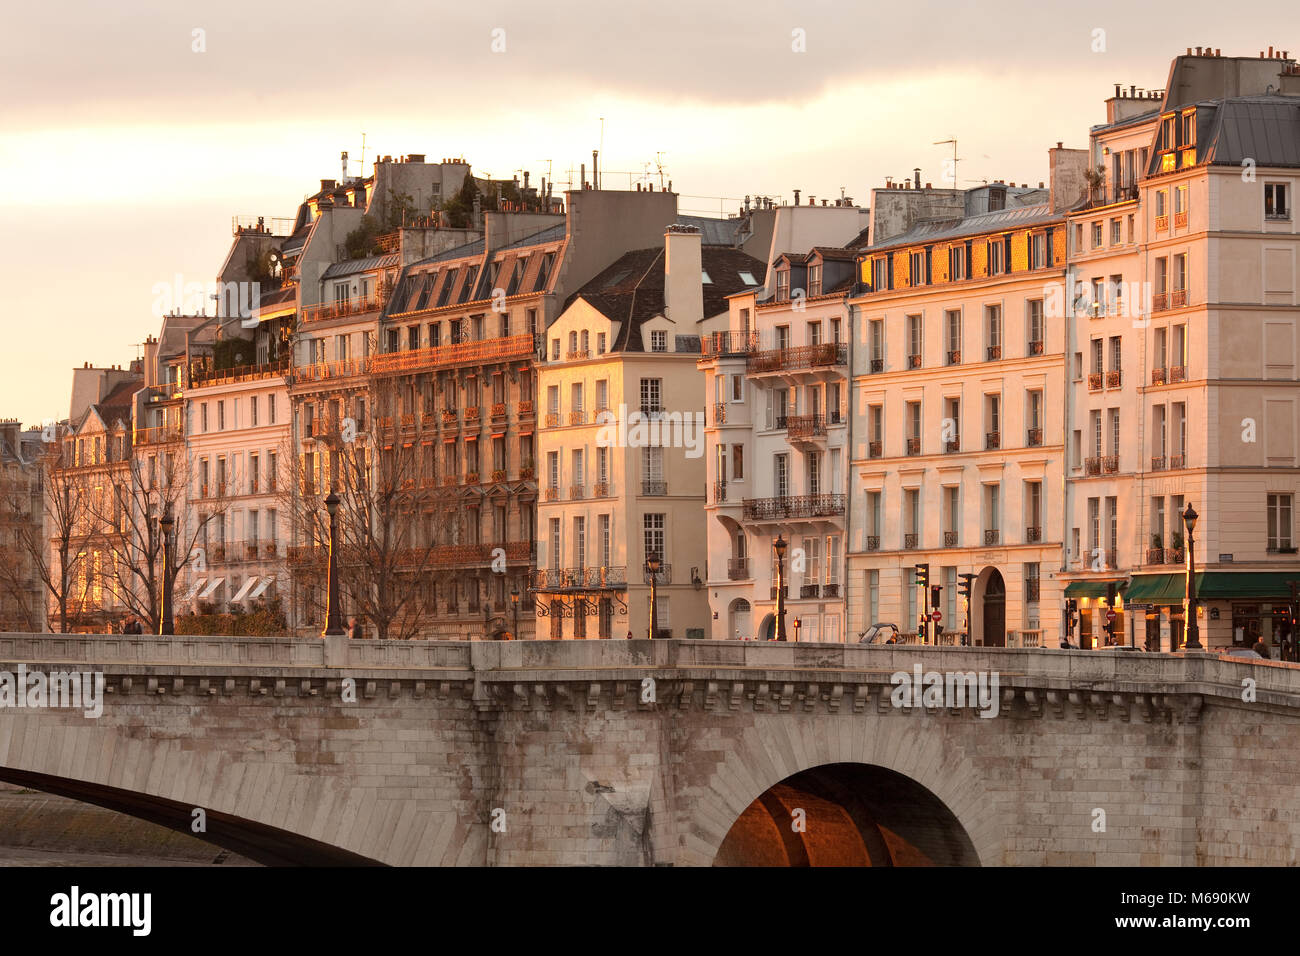 Facades of apartment buildings at Ile Saint Louis and Pont de la Tournelle bridge, Paris, France - Stock Image